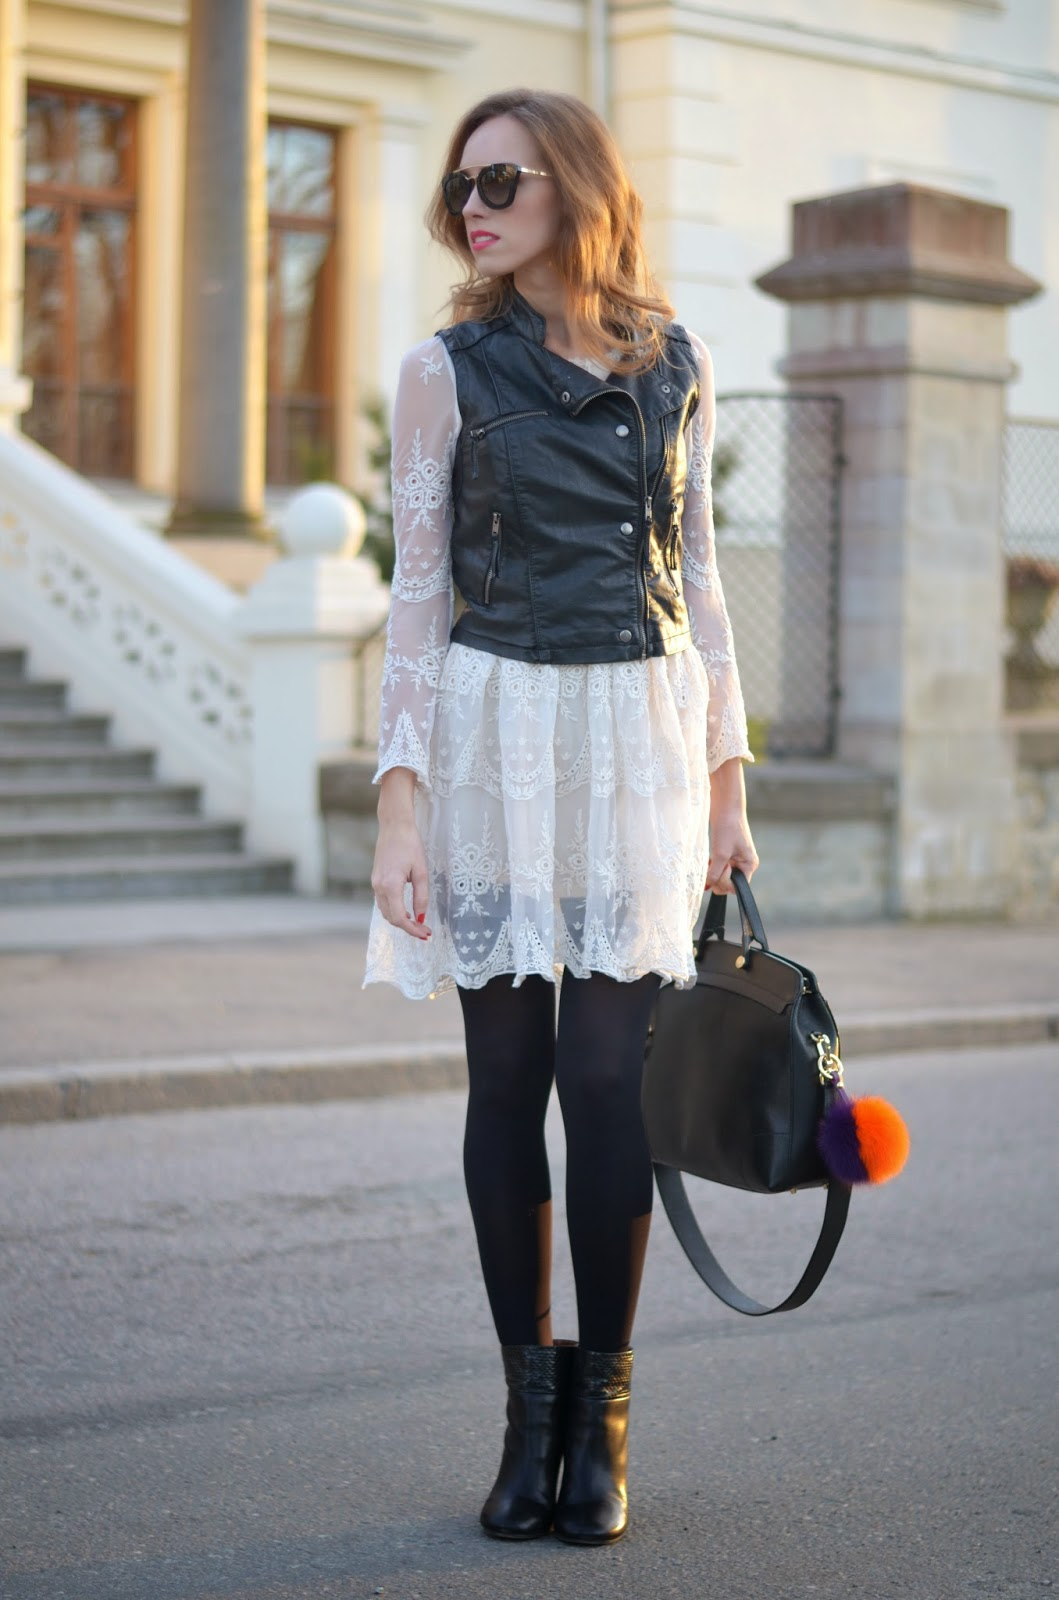 spring-outfit-lace-dress-leather-vest-black-white kristjaana mere